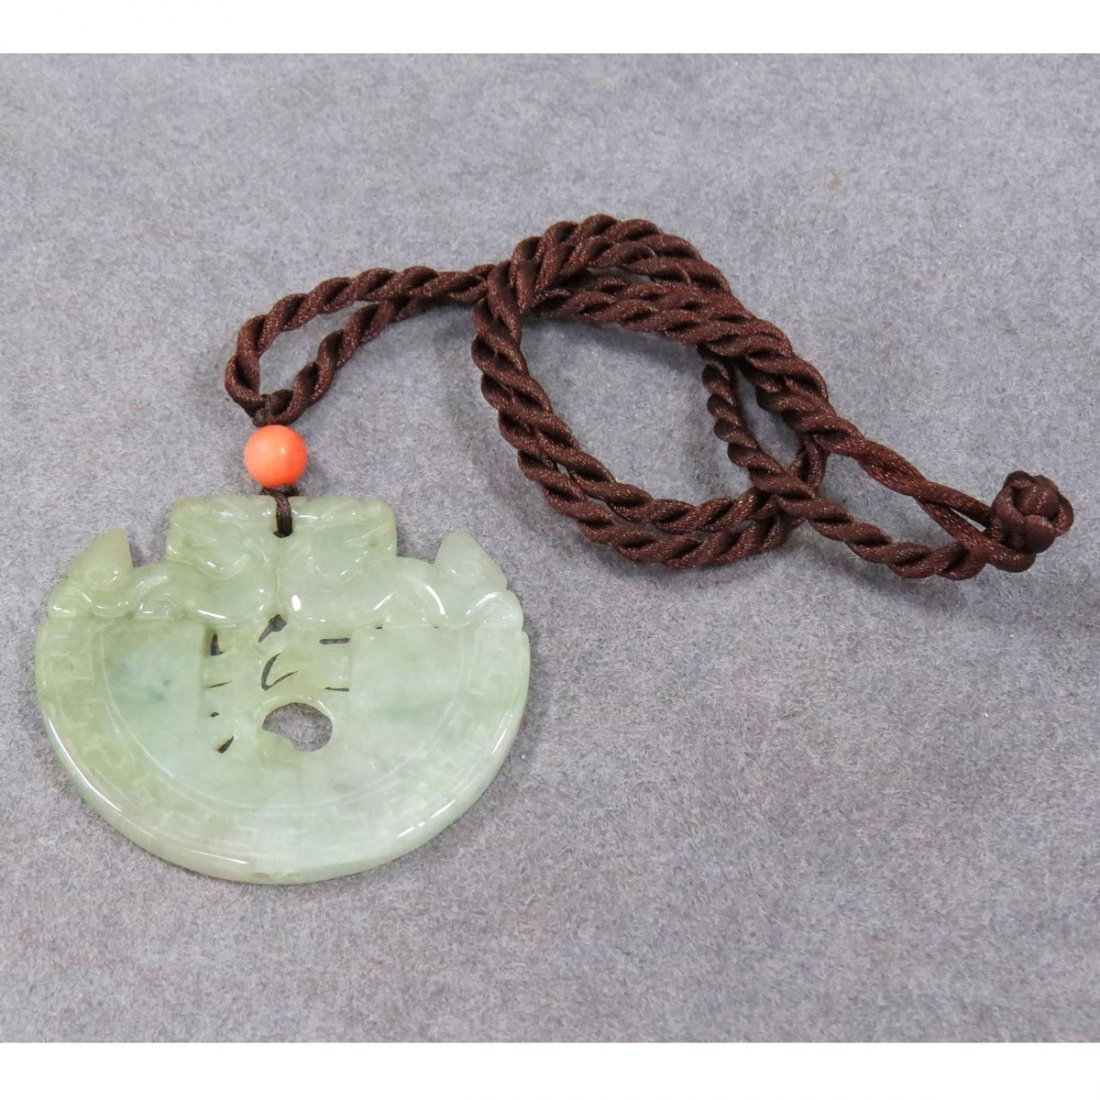 CHINESE CARVED JADE PENDANT/TOGGLE